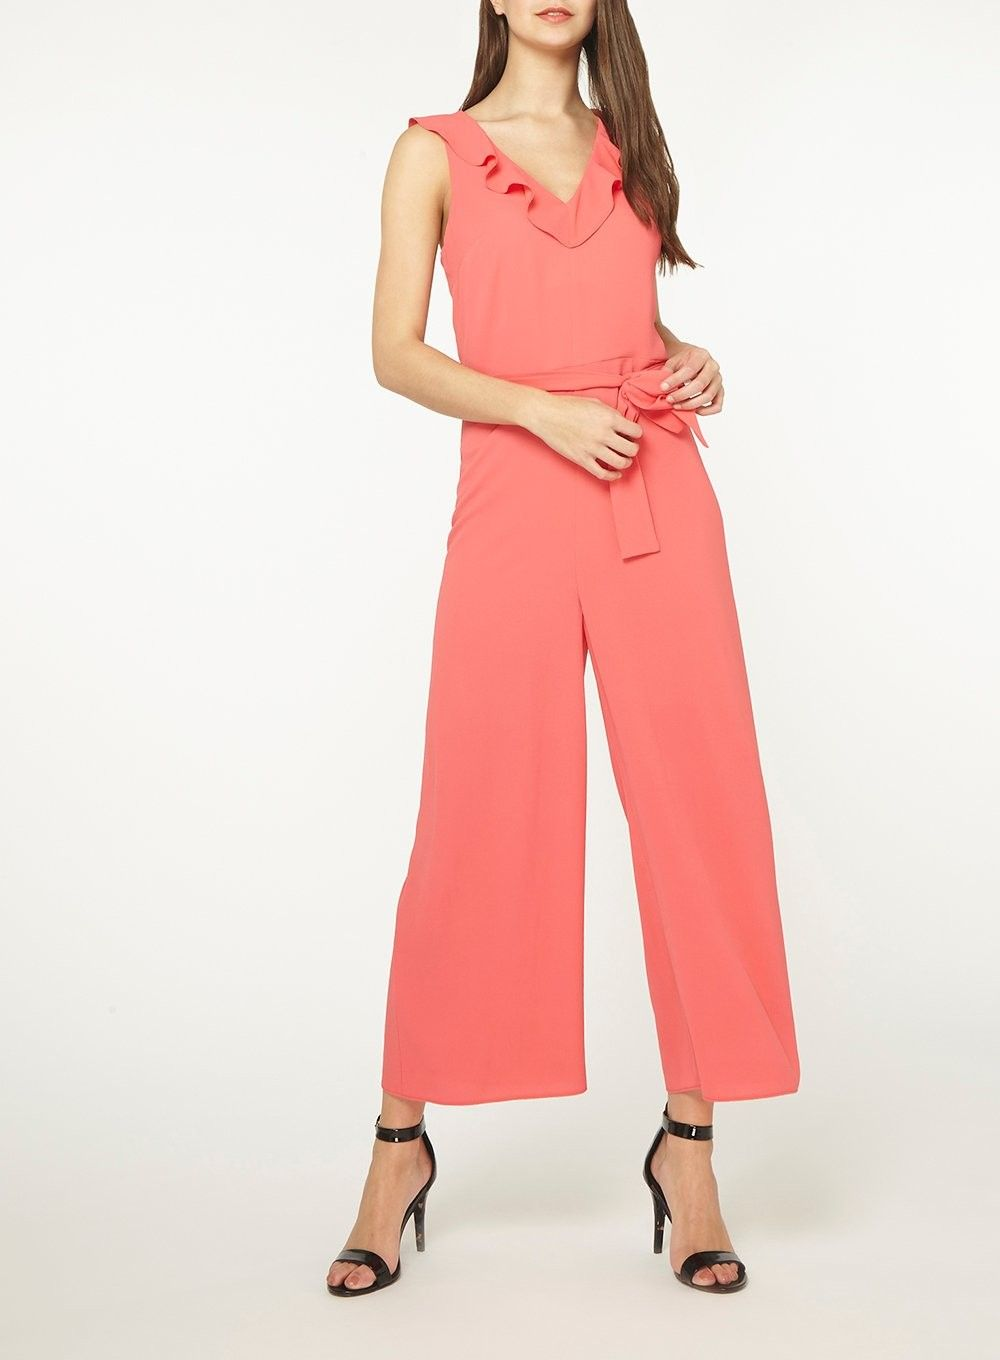 Dorothy Perkins Womens Tall Pink Ruffle Culotte Jumpsuit One Piece Belted